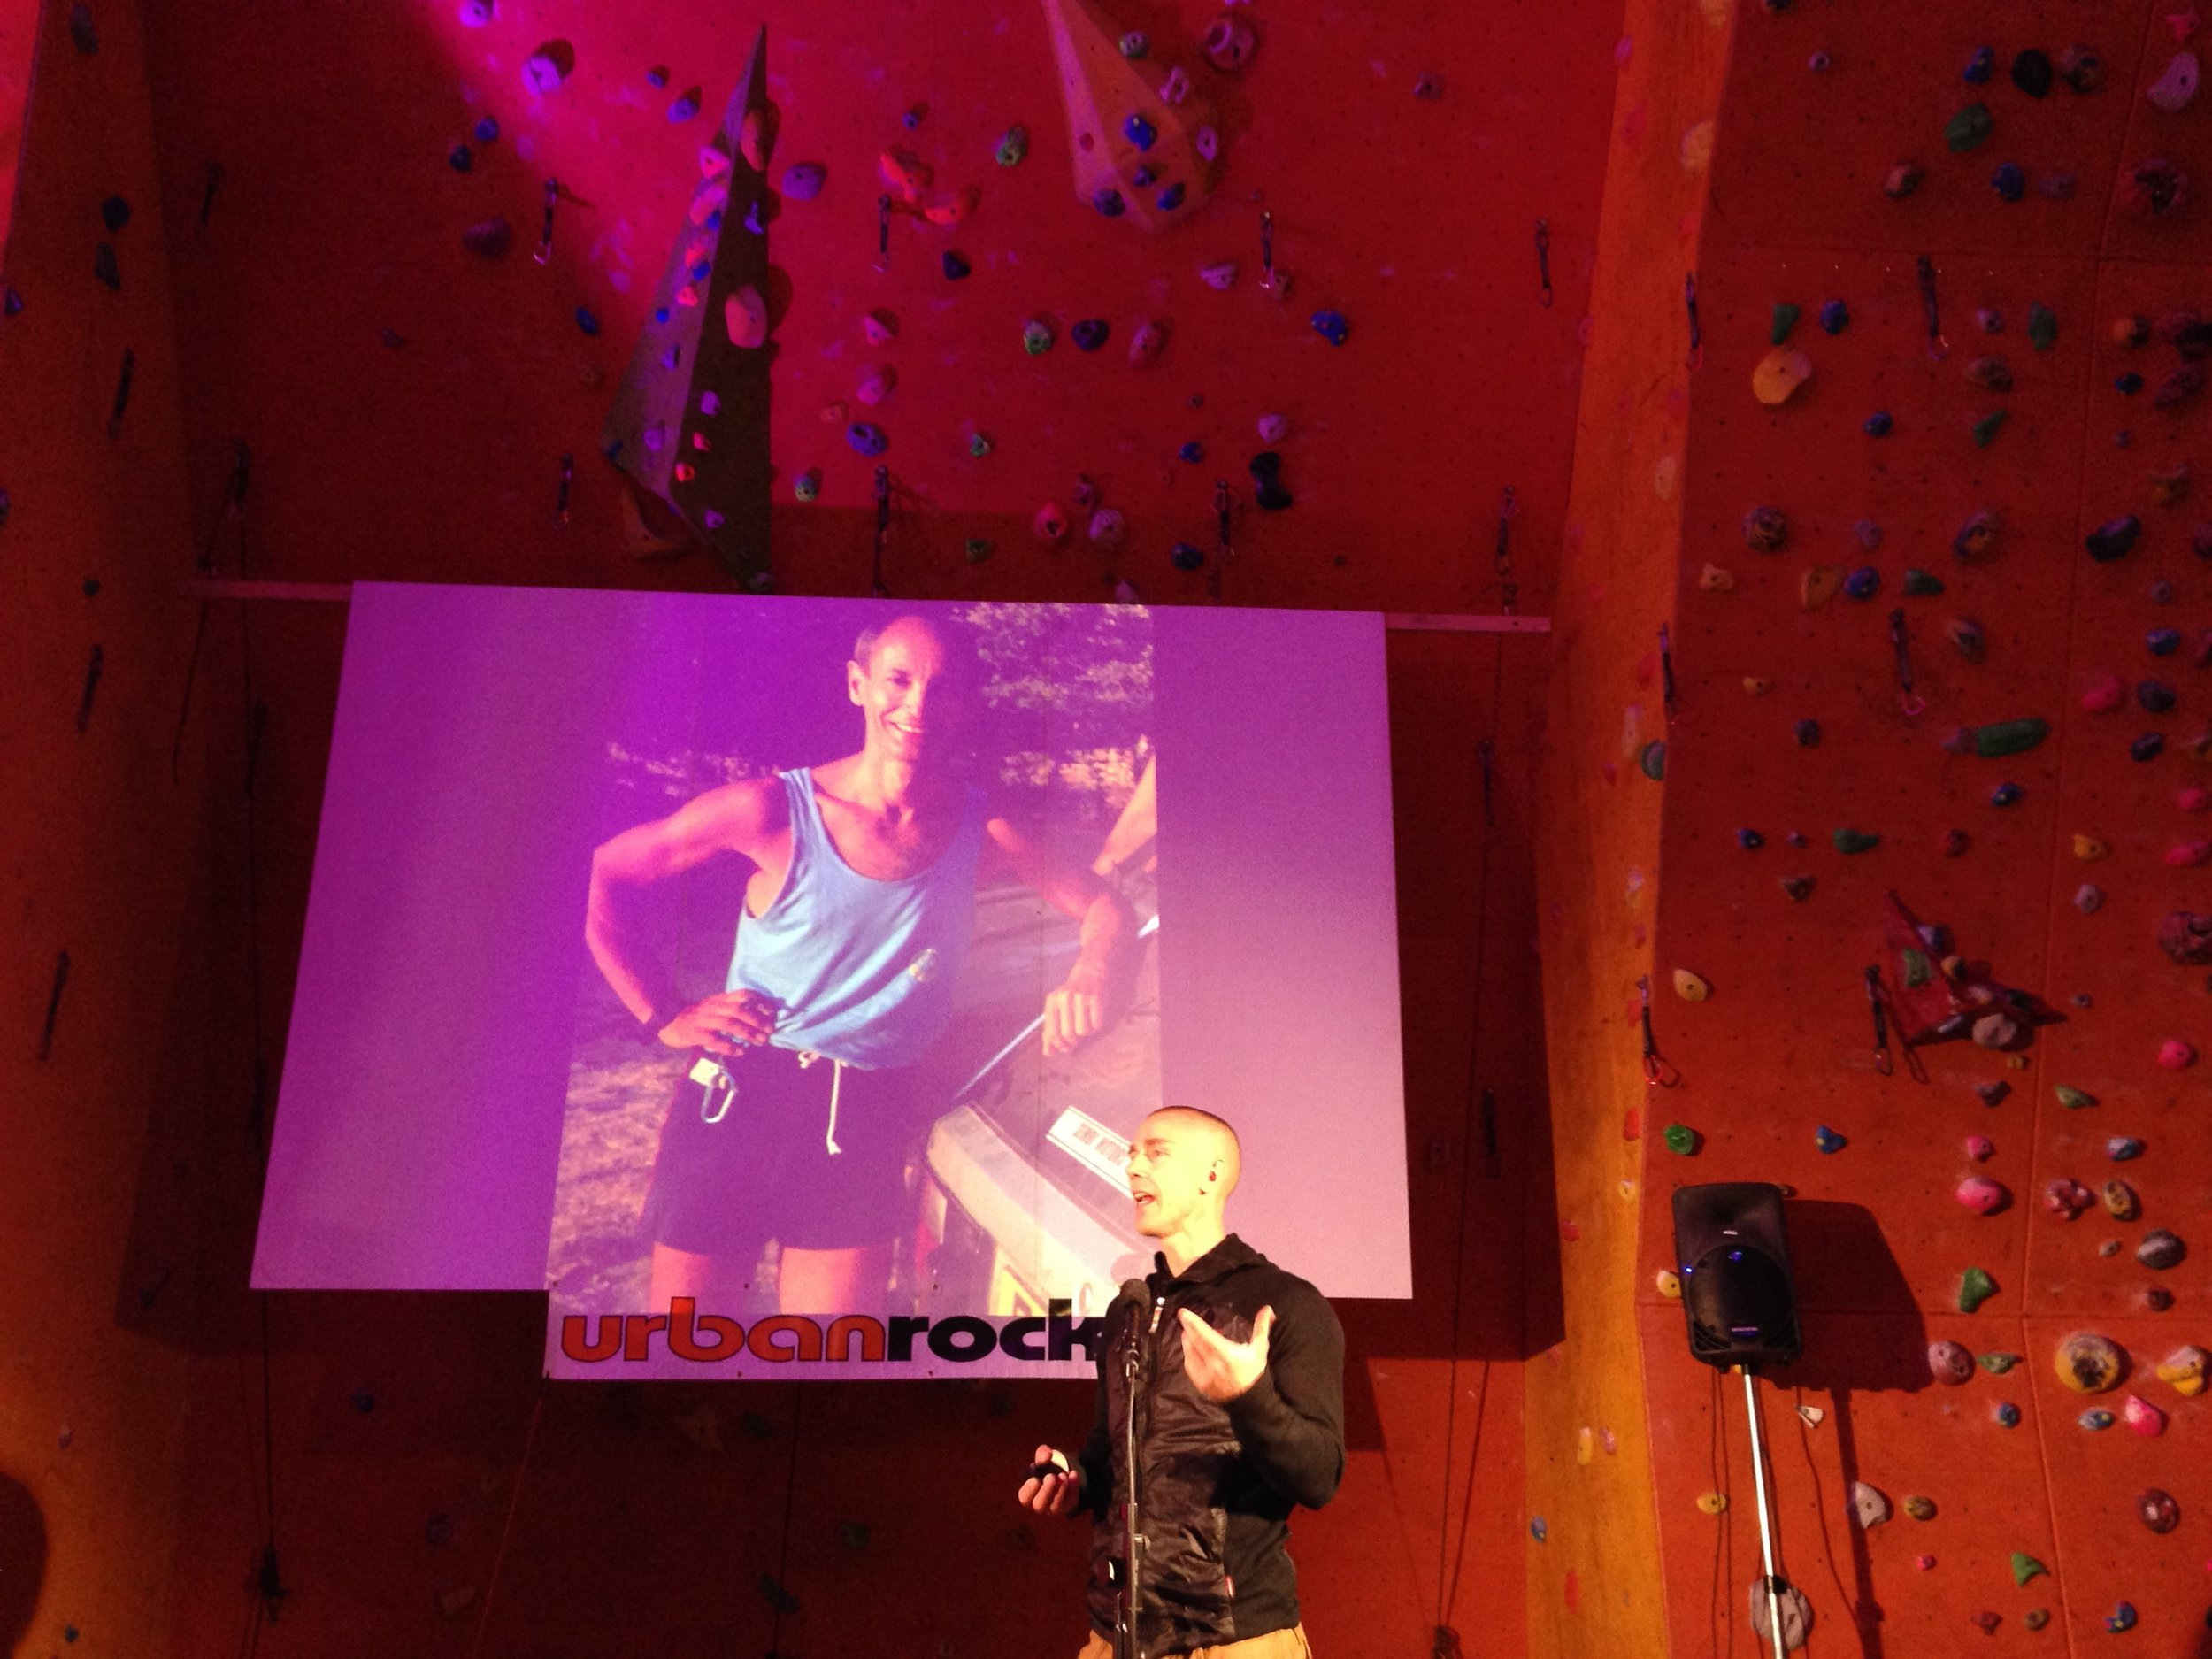 Joint lecture with Adam Ondra at Westway Climbing Centre in London in 2014